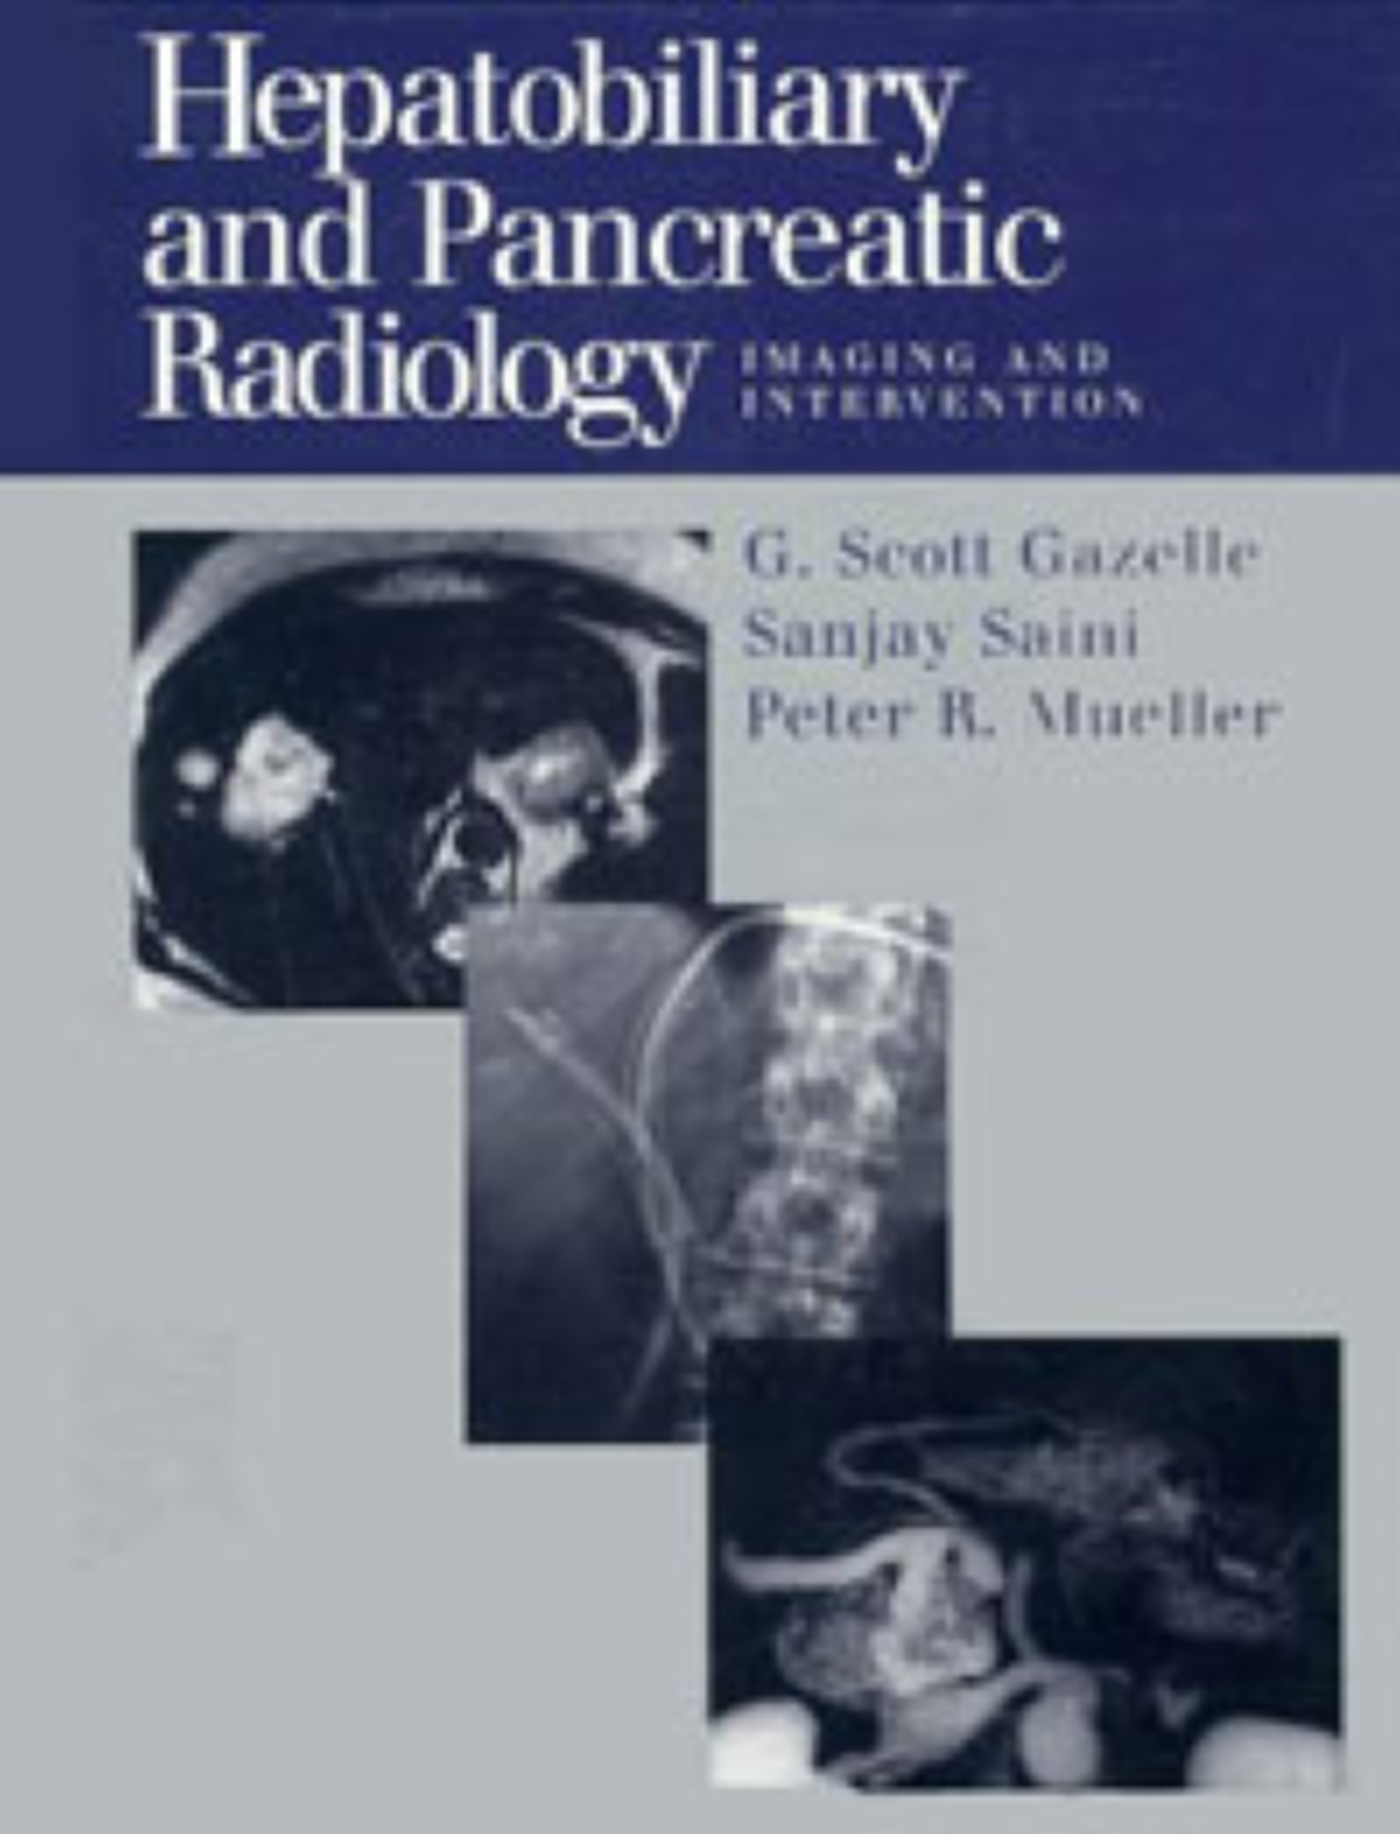 Hepatobiliary and Pancreatic Radiology